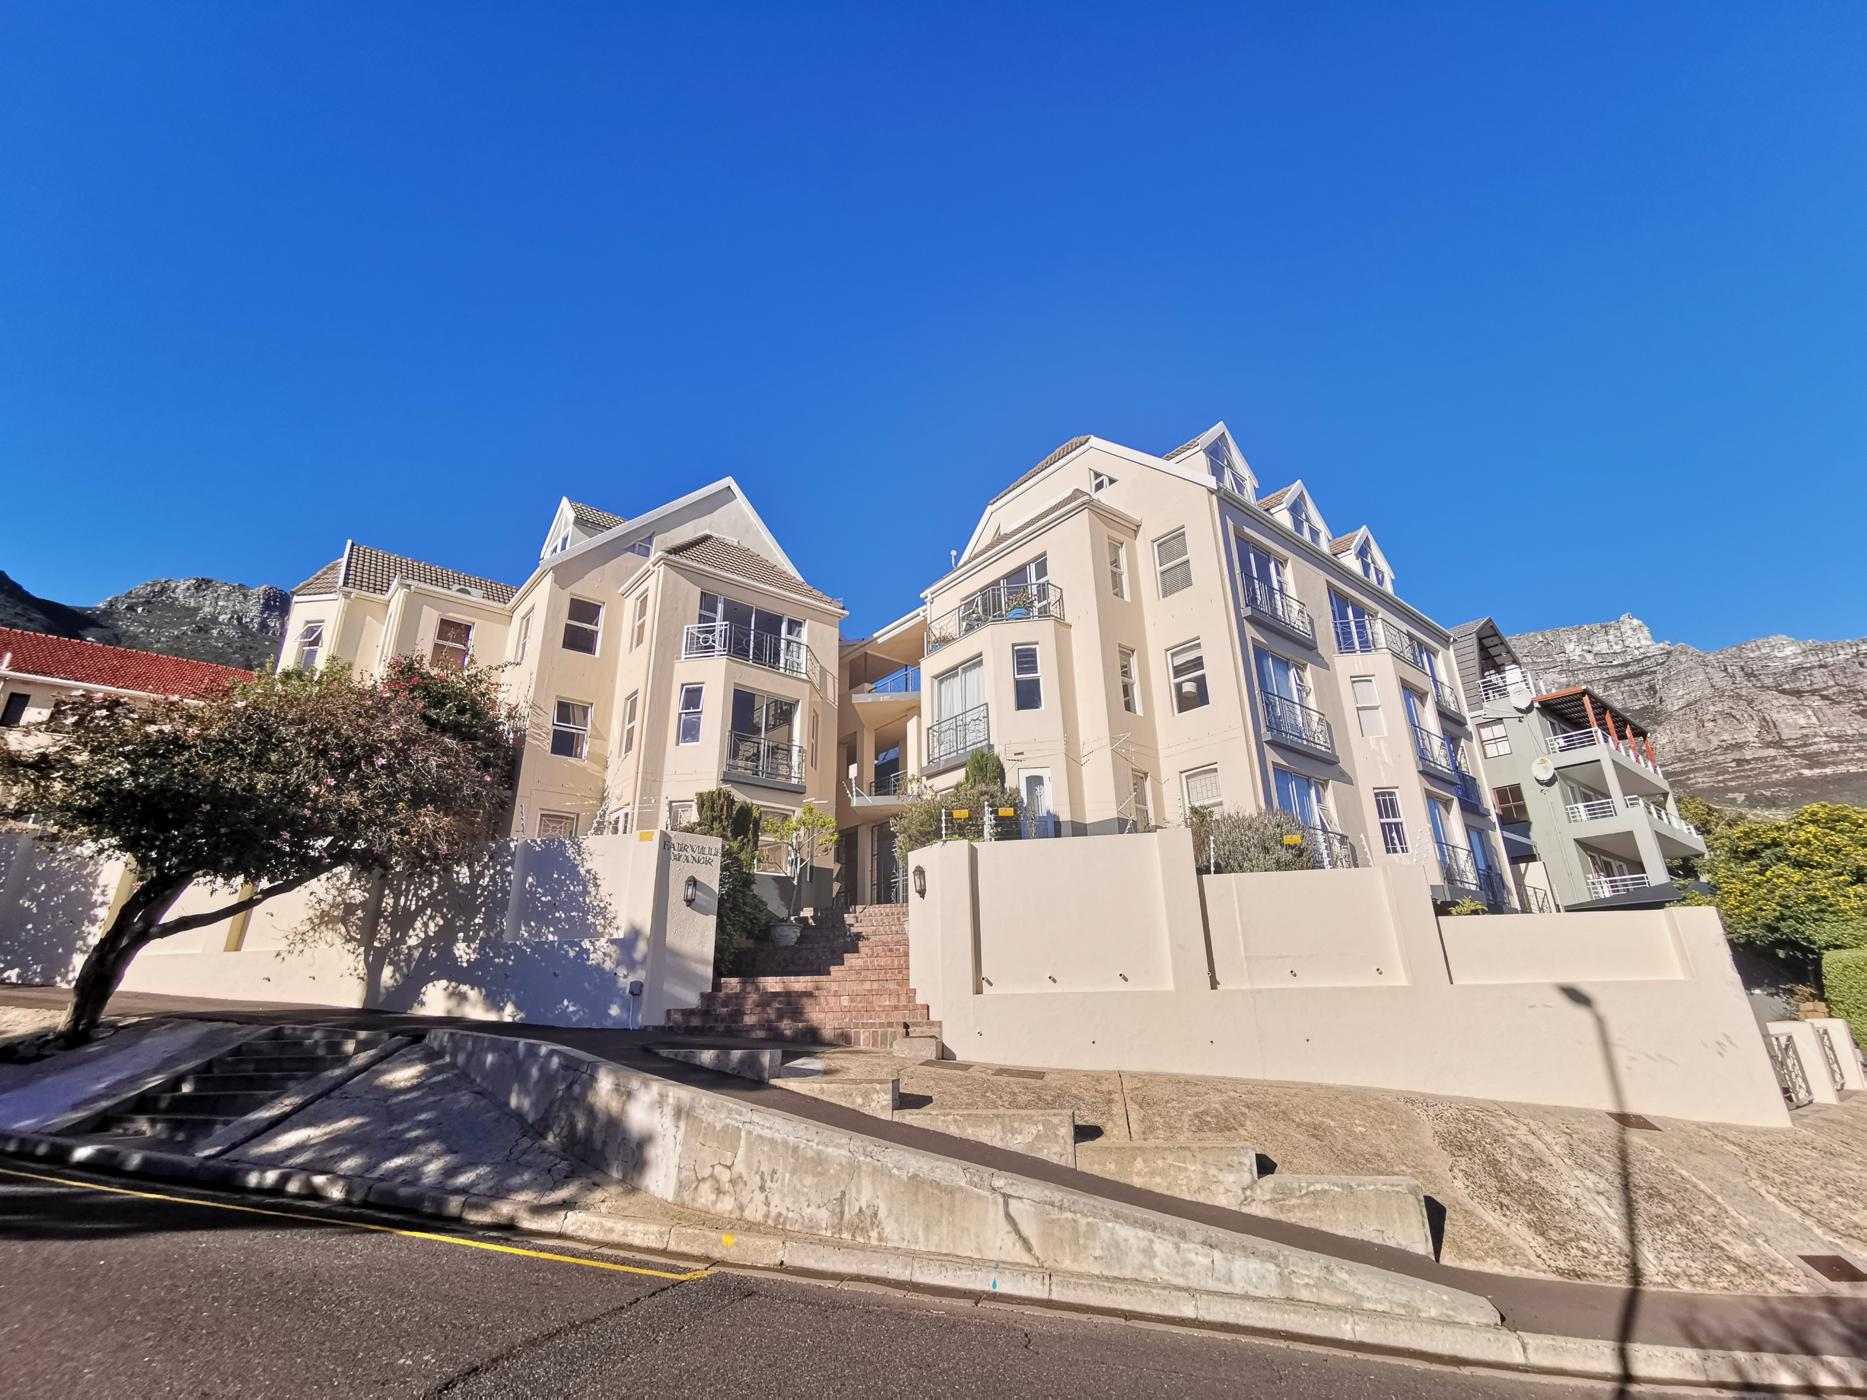 https://listing.pamgolding.co.za/images/properties/201907/1222641/H/1222641_H_29.jpg